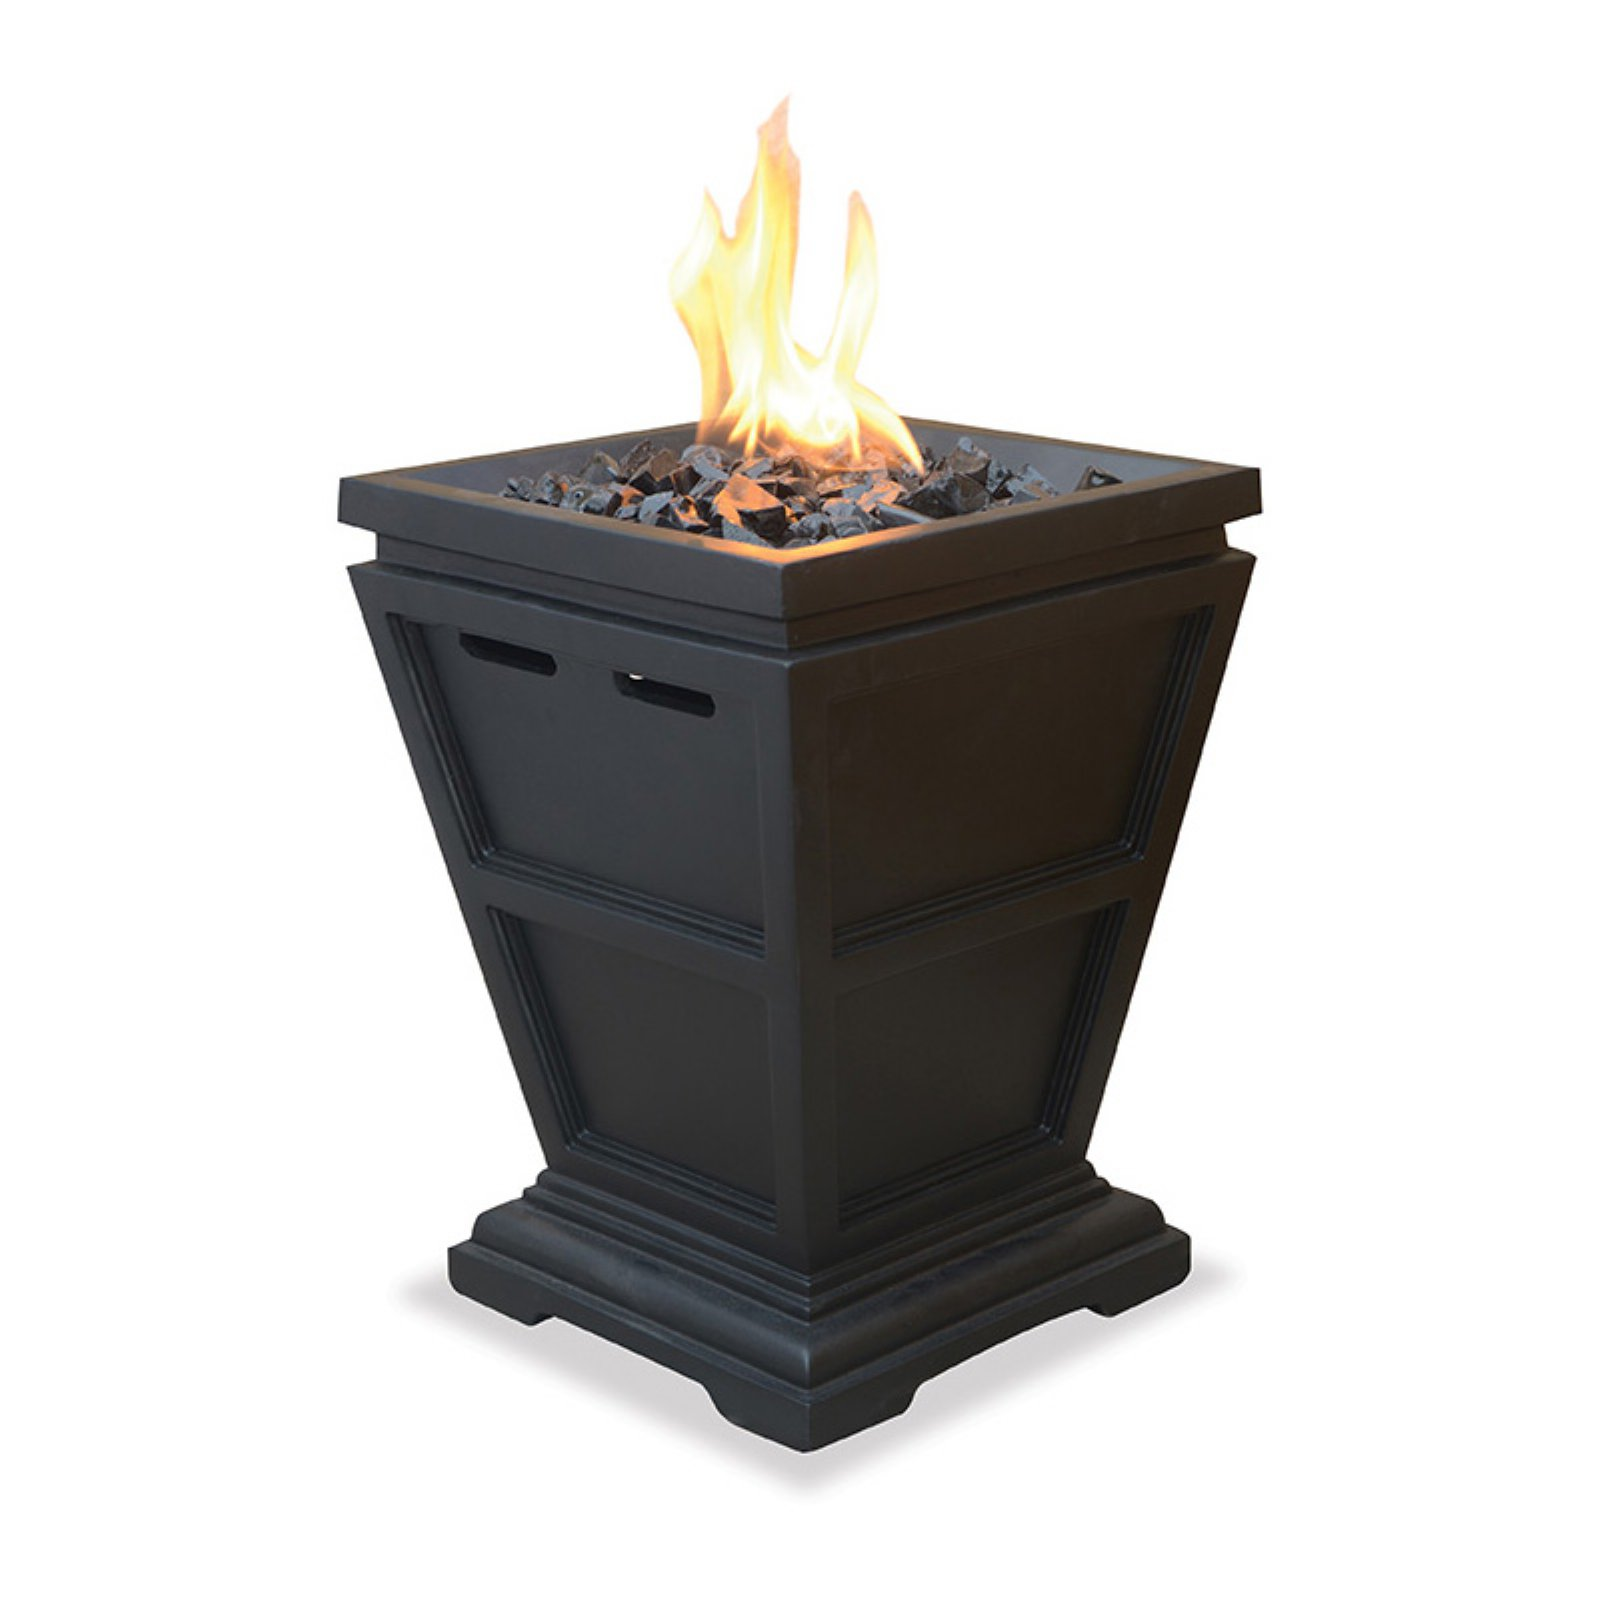 Summary Of Customer Reviews For Uniflame Lp Gas Fire Pit Tabletop Column Reviewchomp